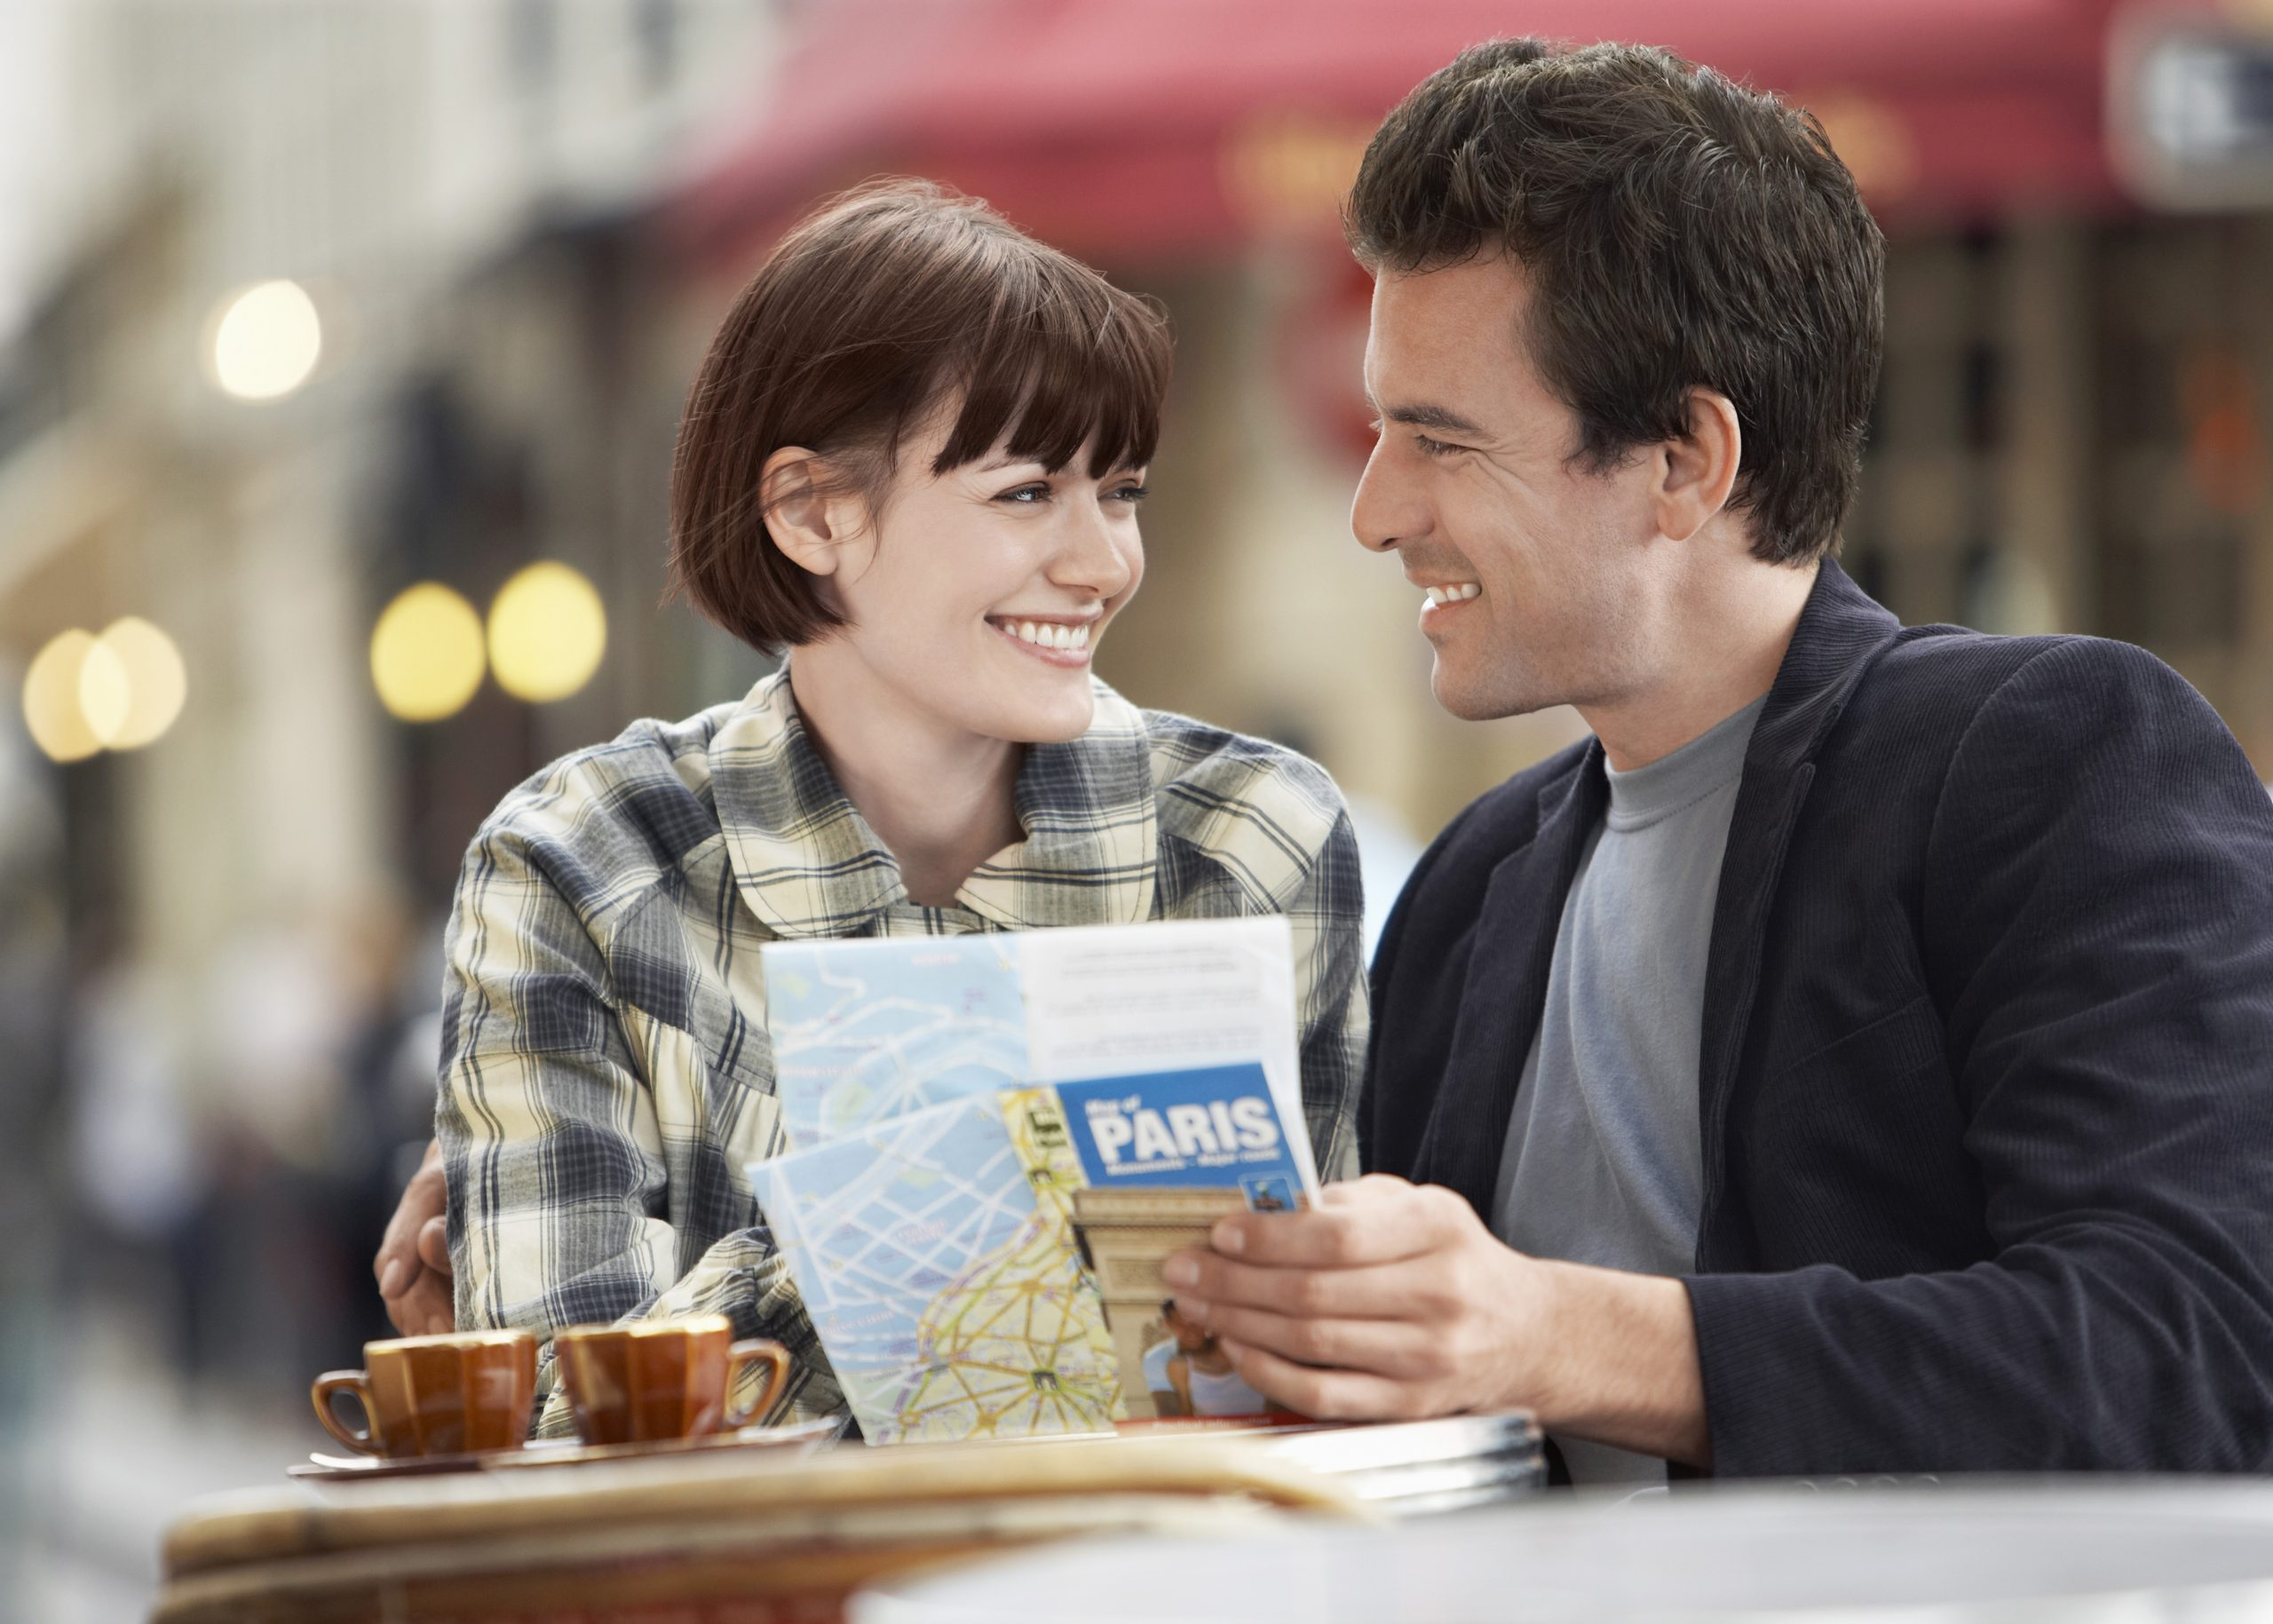 Image of couple on vacation in Paris.